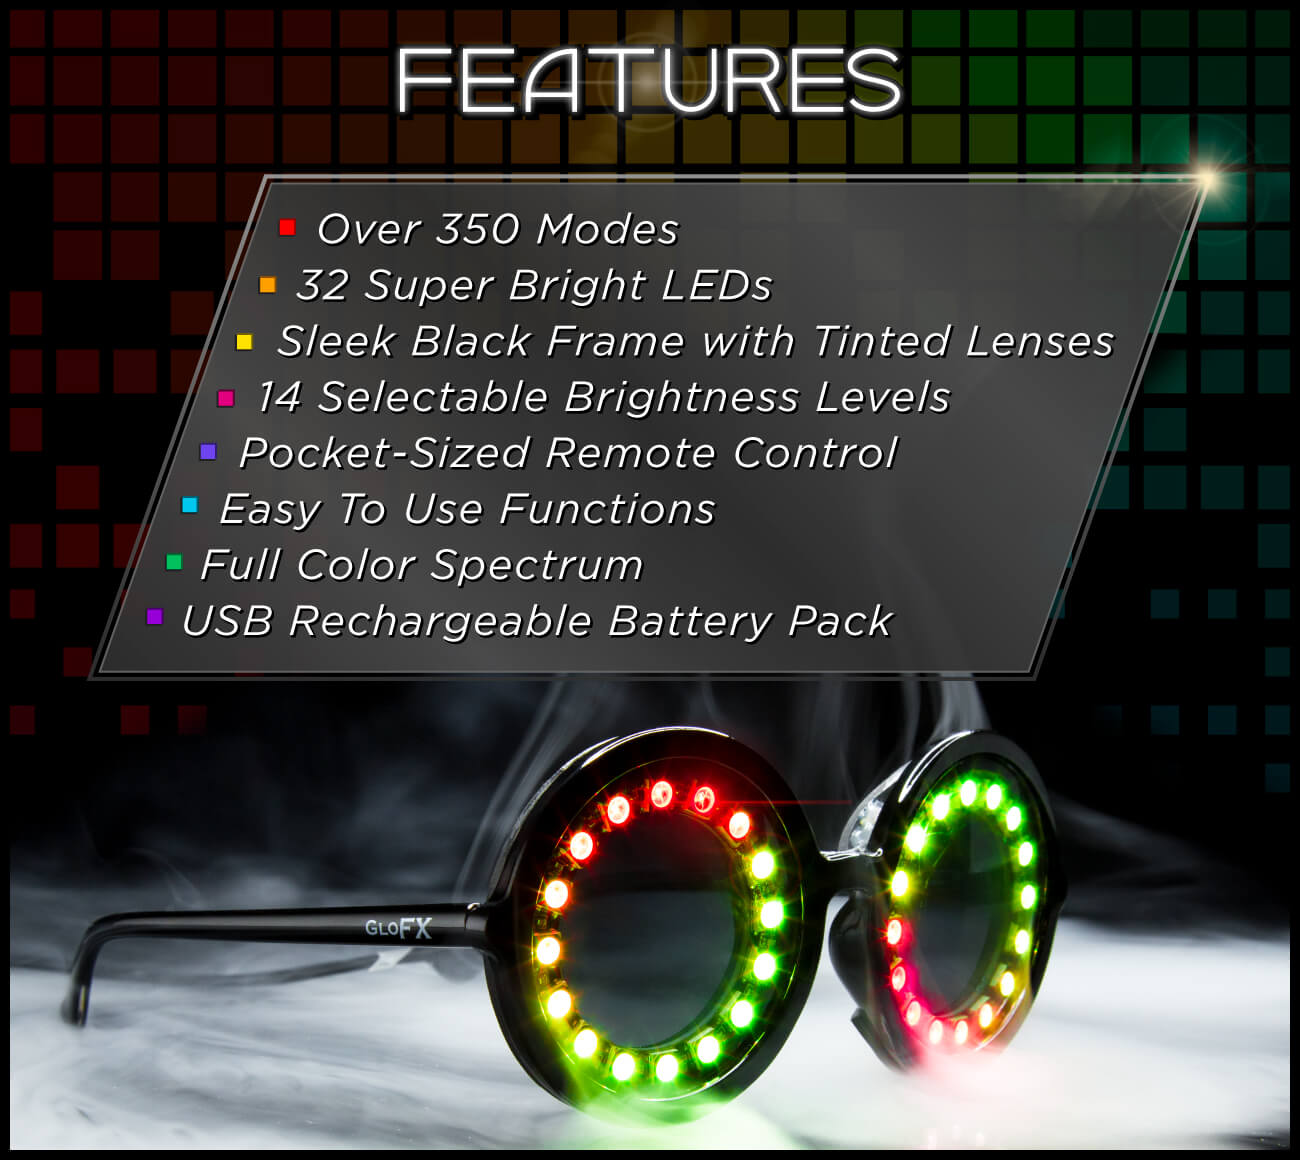 GloFX Pixel Pro LED Glasses Admat Features